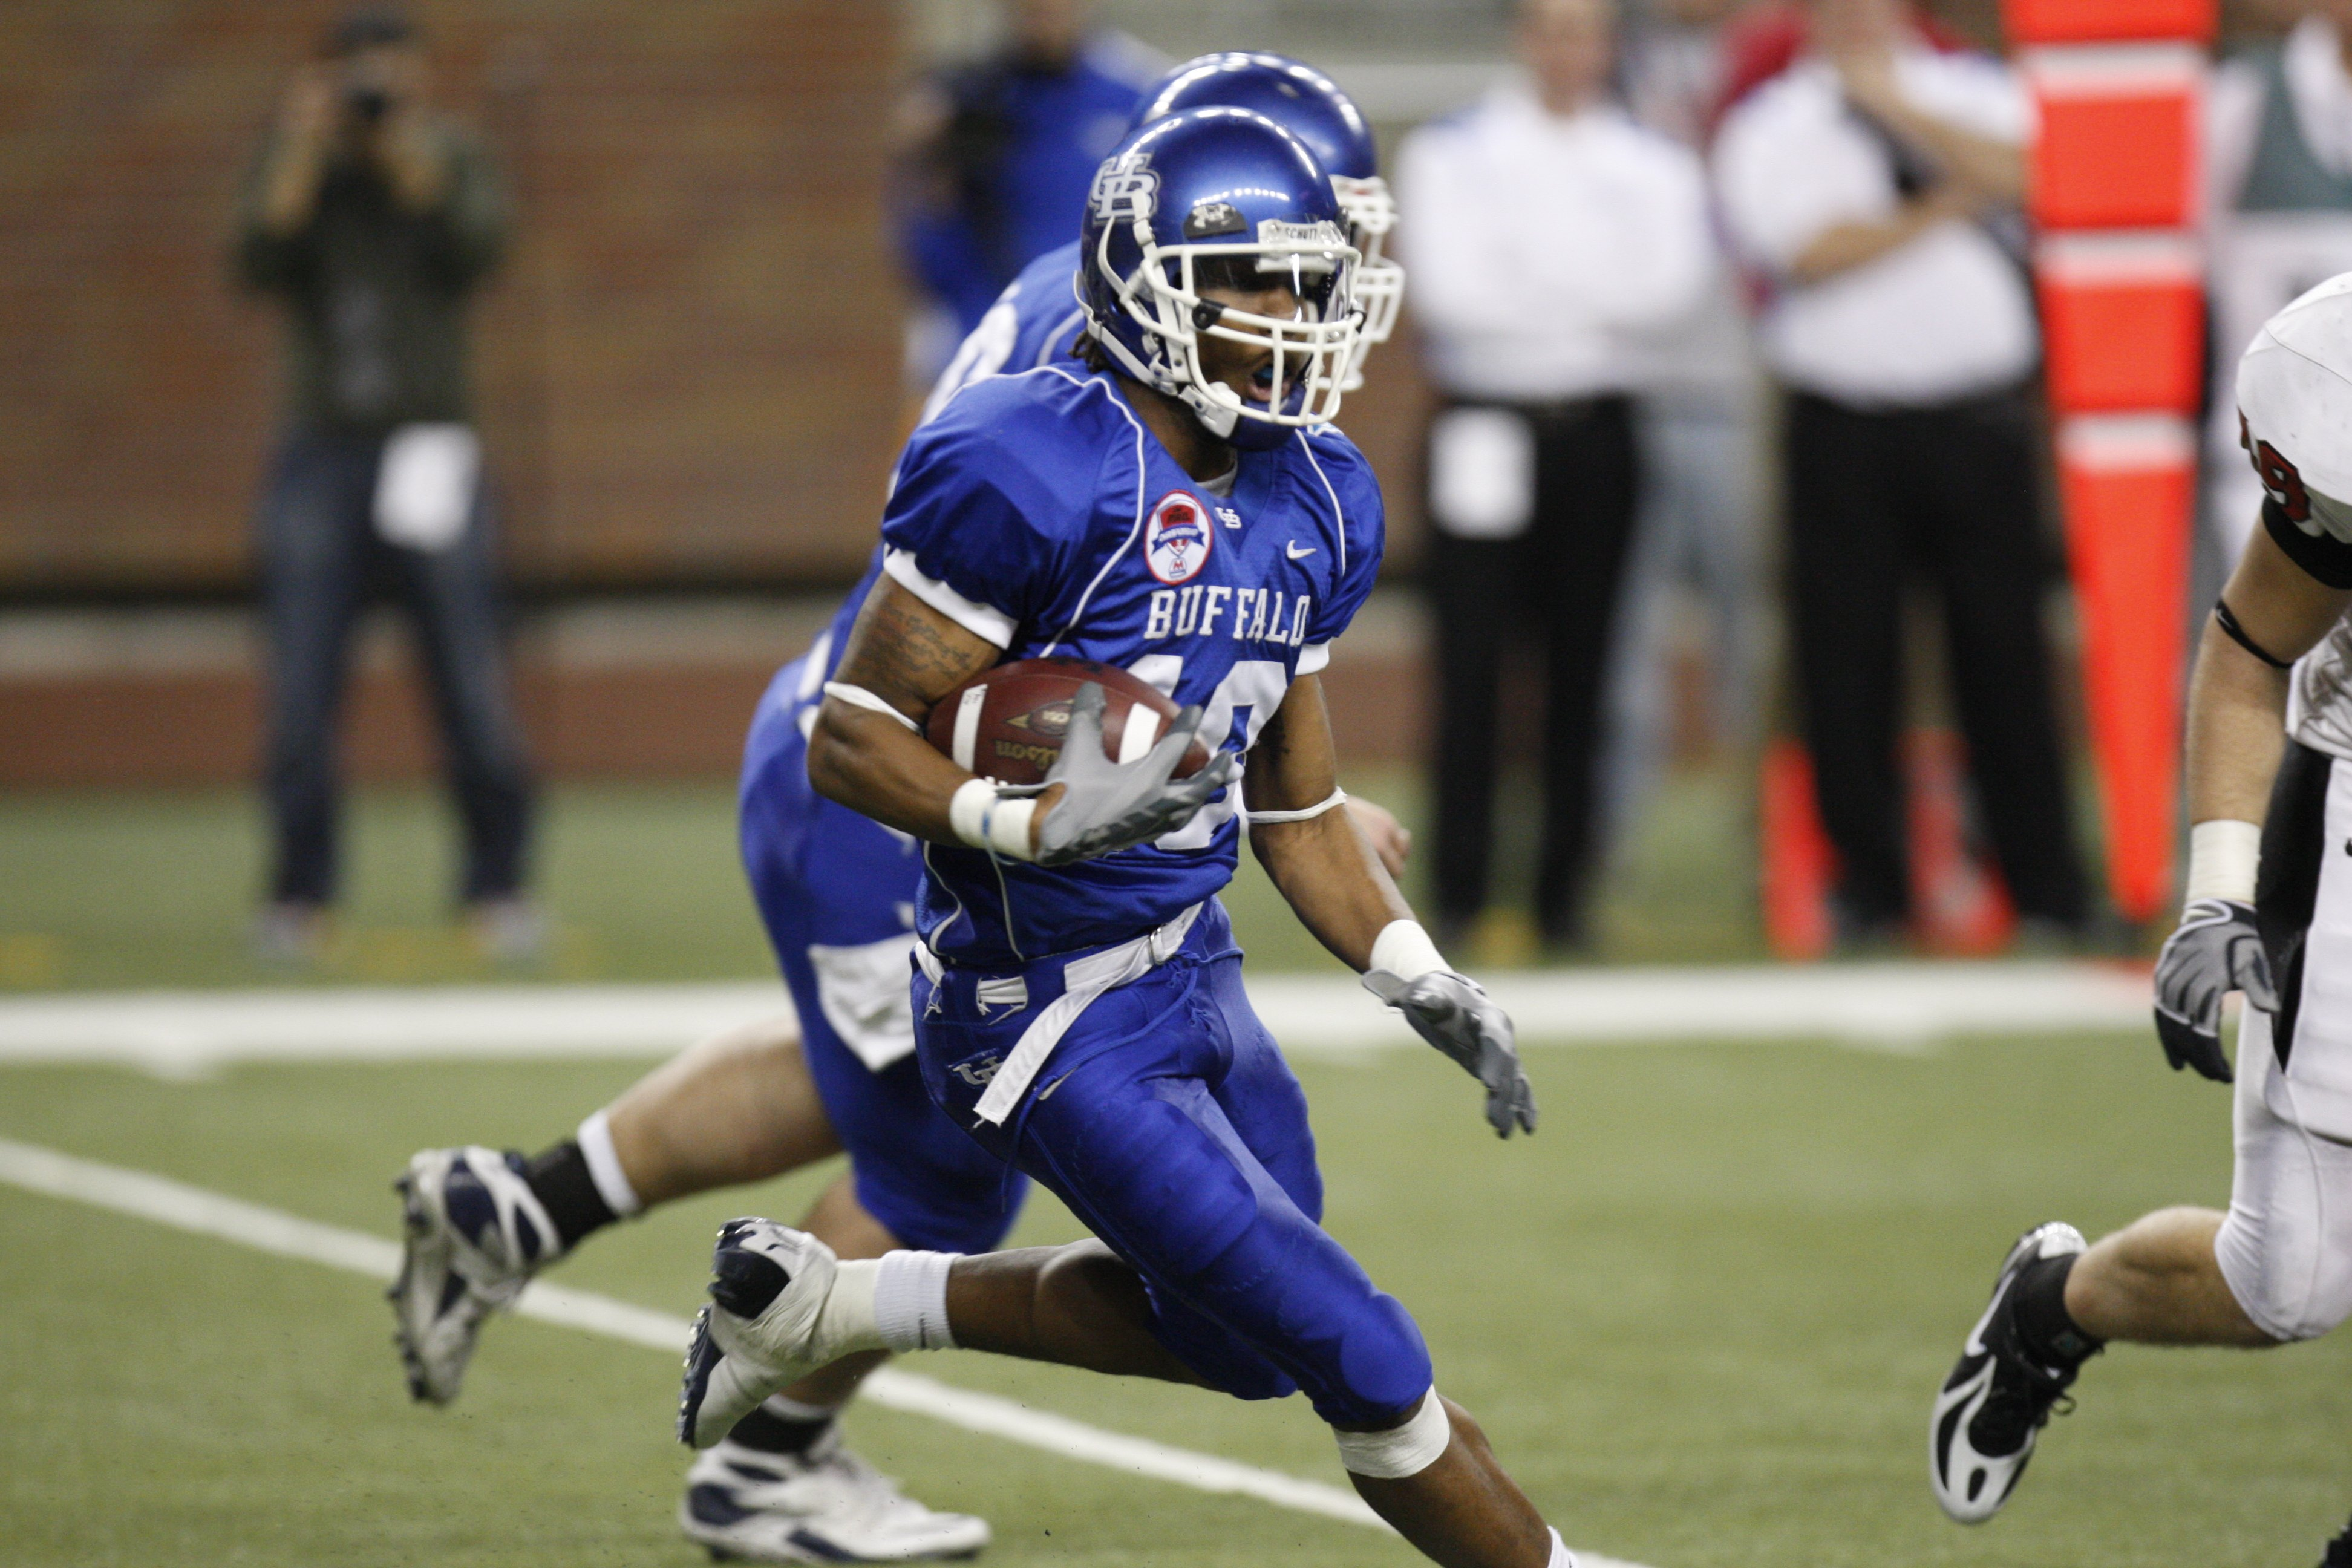 DETROIT - DECEMBER 5:  Wide Receiver Naaman Roosevelt #18 of the Buffalo Bulls runs the ball against the Ball State Cardinals during the MAC Championship game on December 5, 2008 at Ford Field in Detroit Michigan. (Photo by: Gregory Shamus/Getty Images)